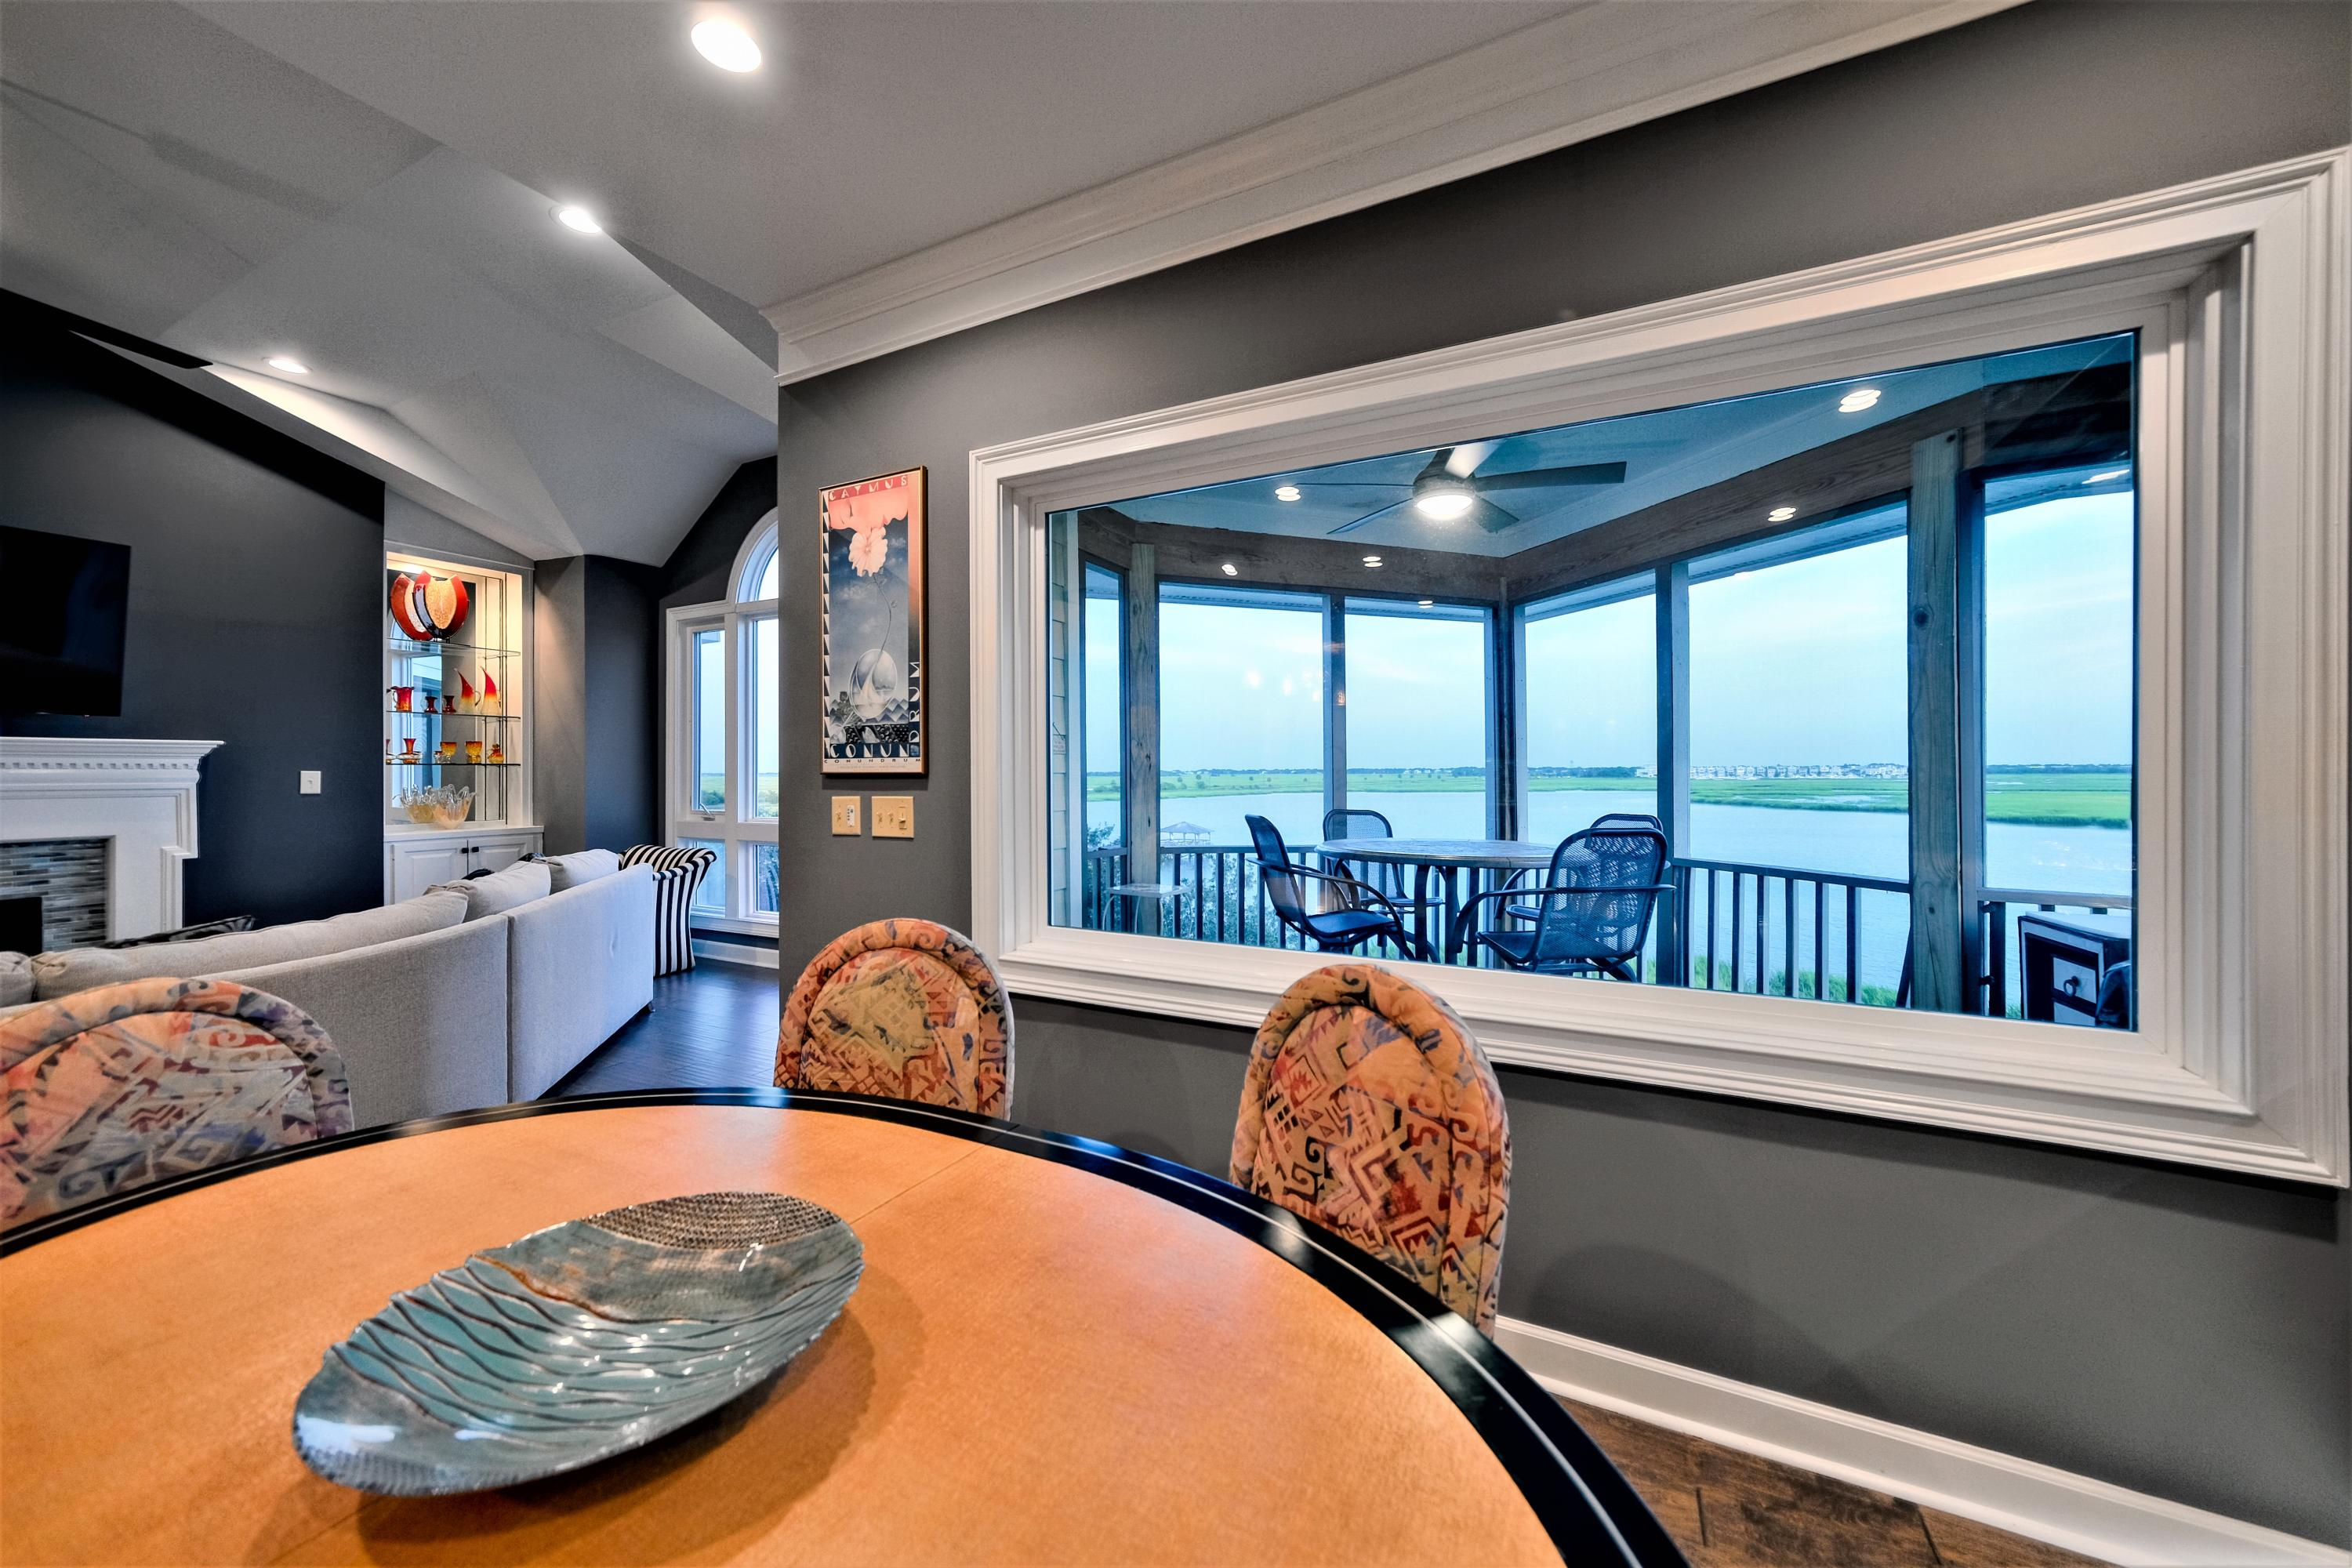 Simmons Pointe Homes For Sale - 1551 Ben Sawyer, Mount Pleasant, SC - 51